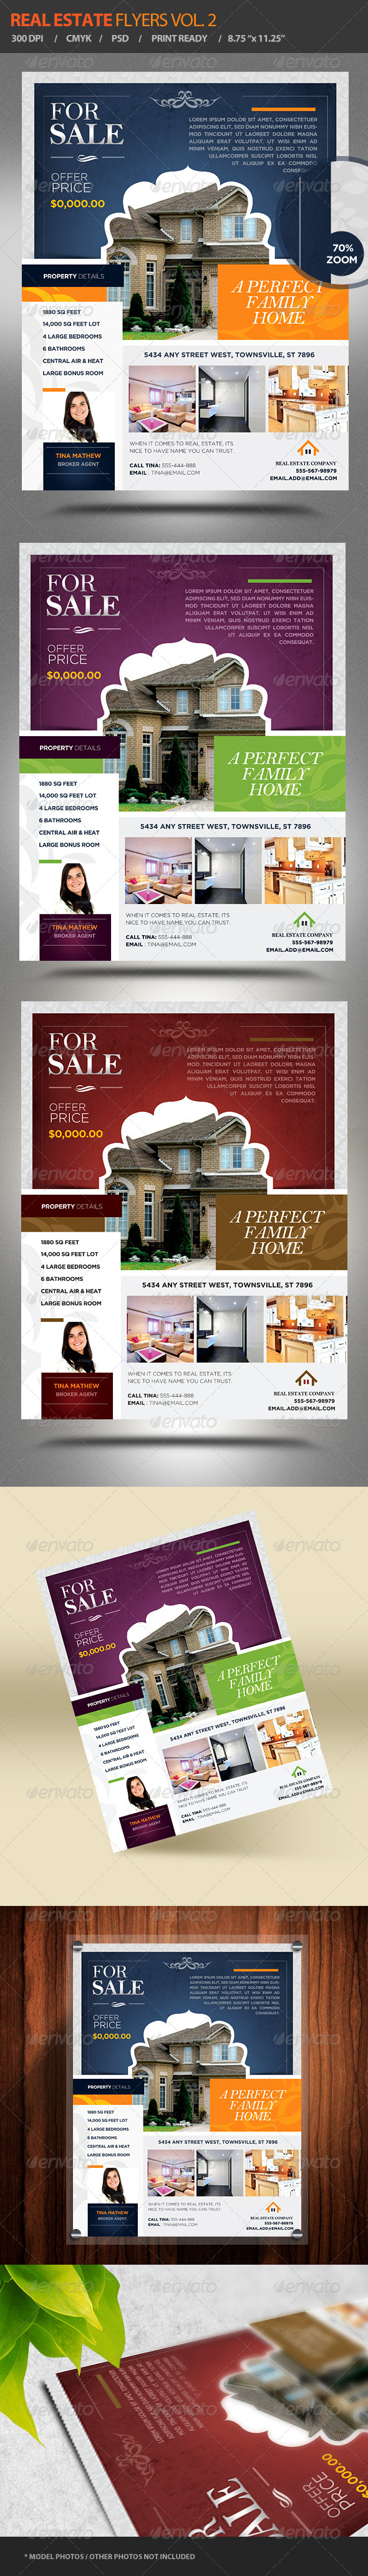 Real Estate Flyers Vol. 2 - Flyers Print Templates